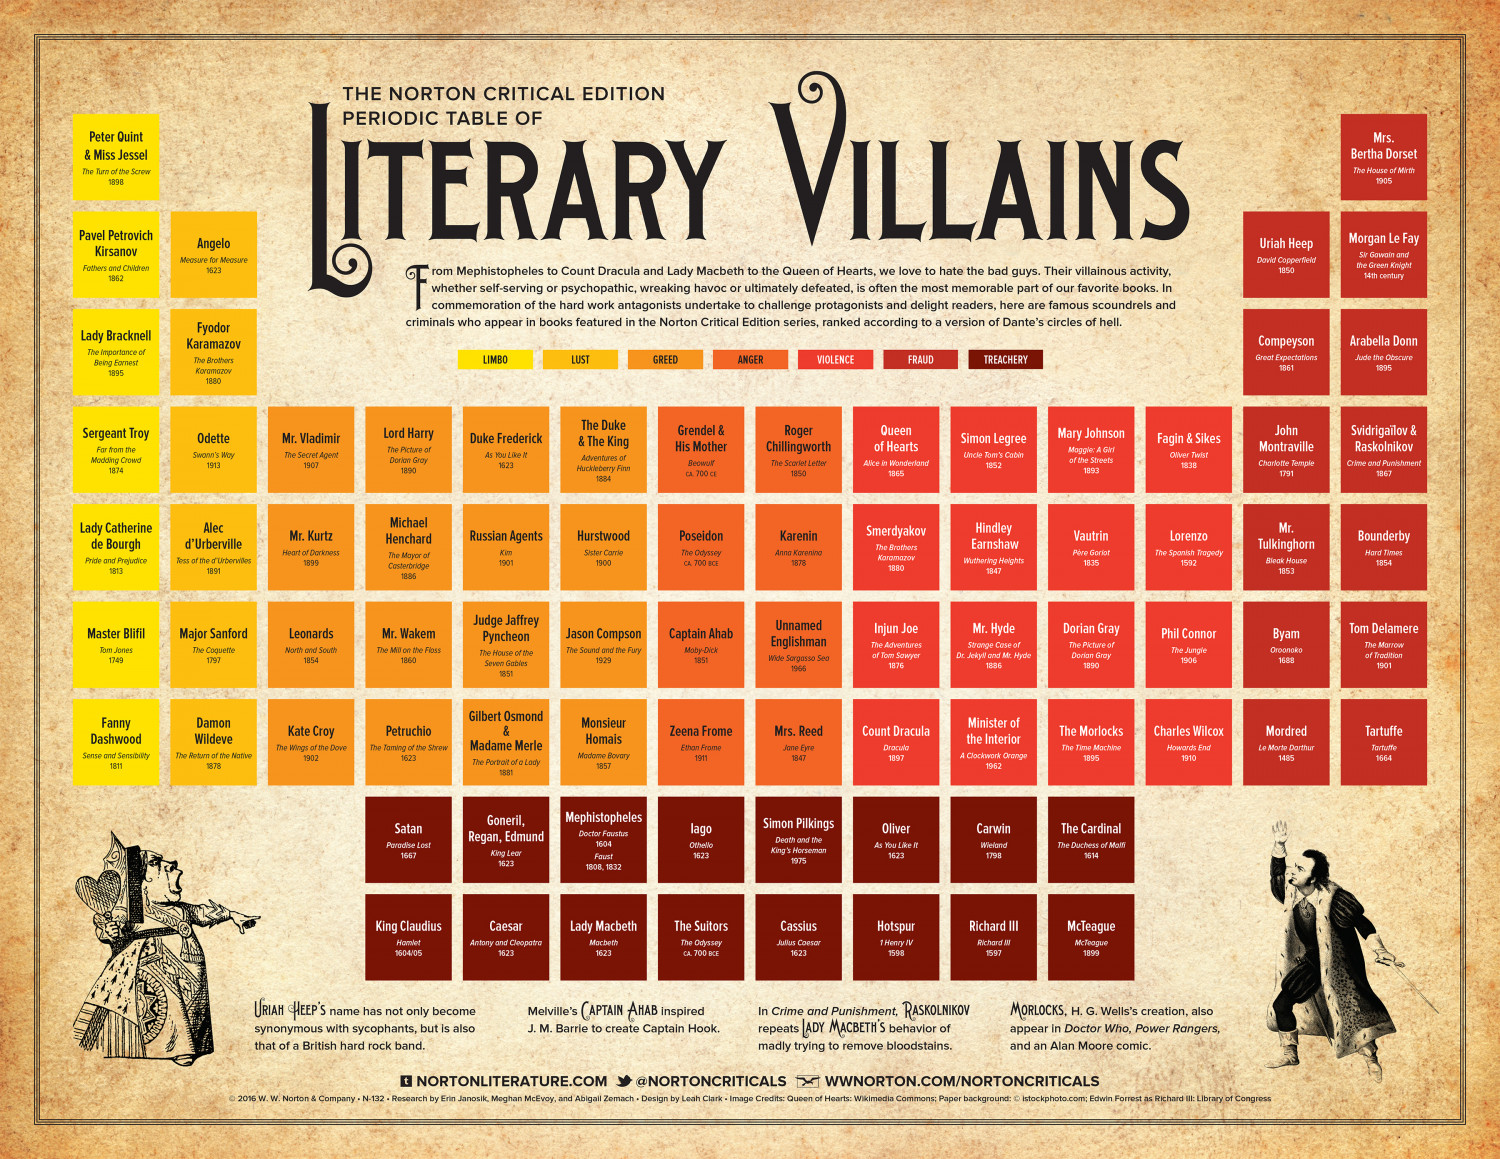 Norton Critical Edition Periodic Table of Literary Villains Infographic